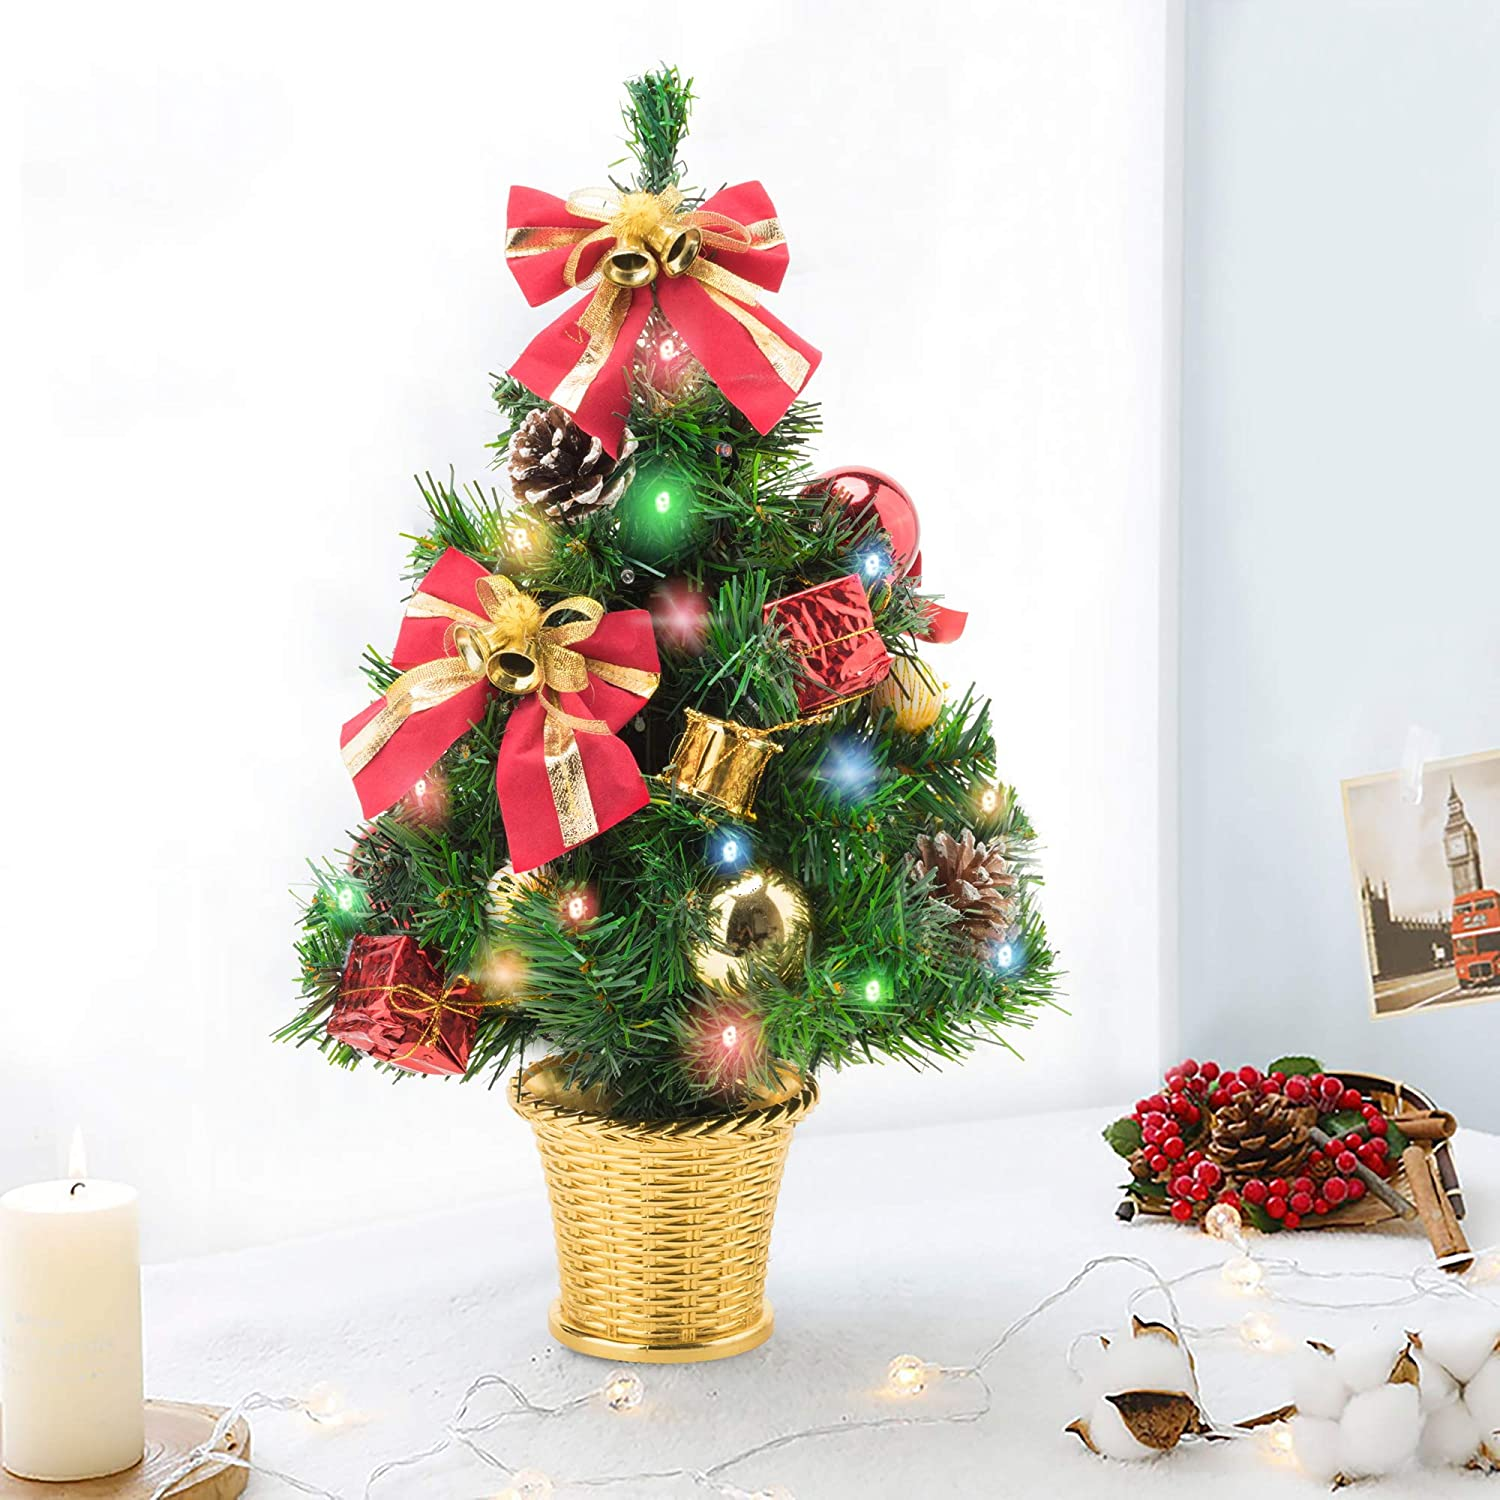 Amasava Small Christmas Tree 45cm Pre Lit Christmas Tree With Multi Colour Led Lights Mini Desktop Xmas Trees Decorated With Ornaments Pinecones And Bowknots Small Gift Box Christmas Baubles In Gold Amazon Co Uk